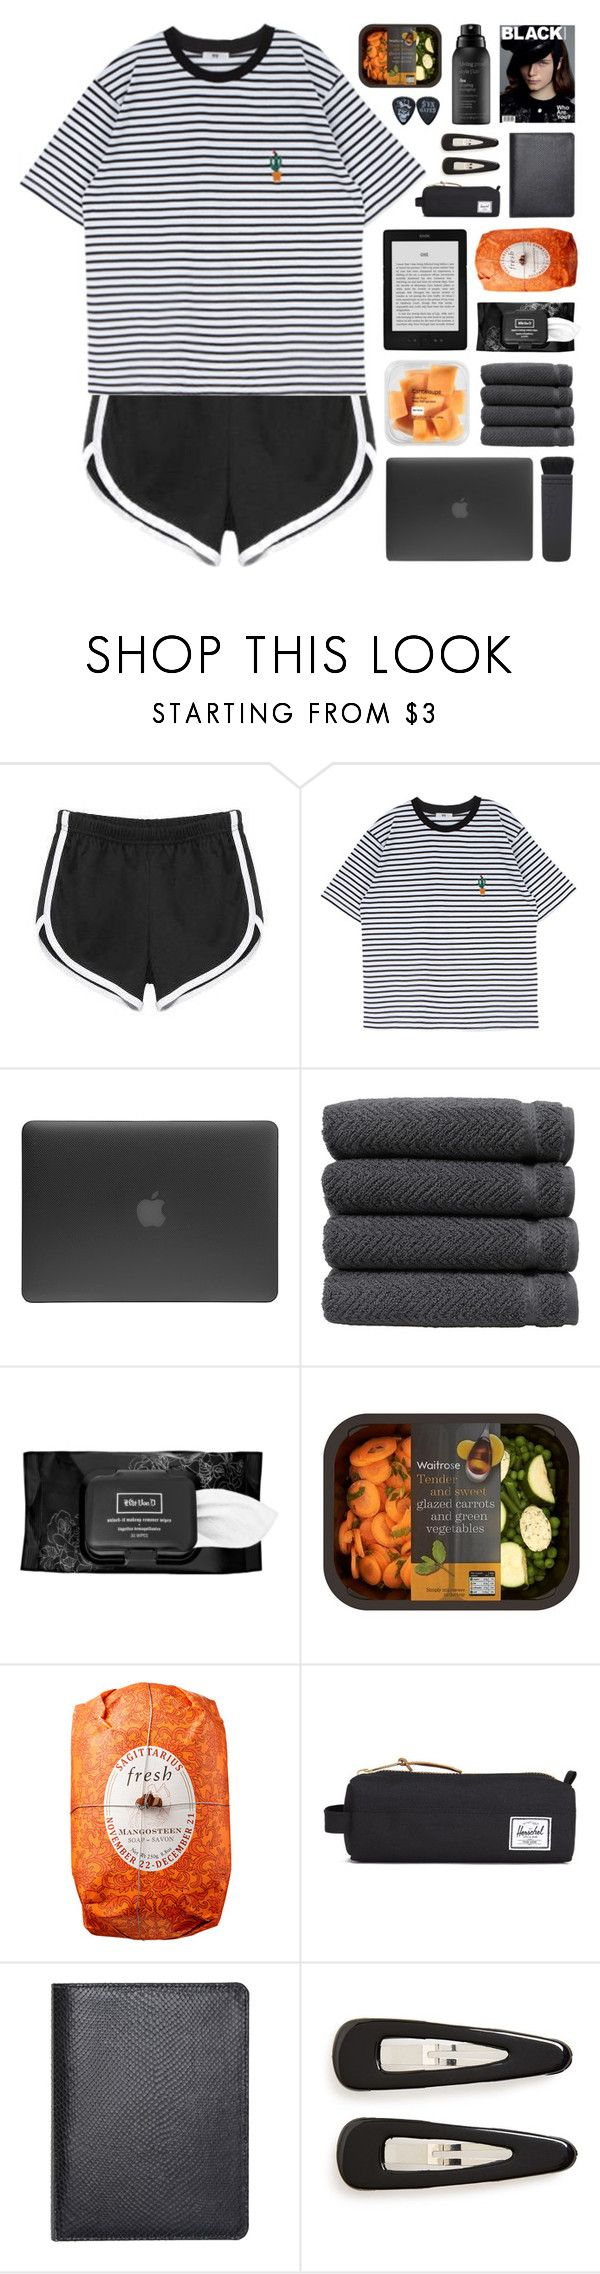 """""""I kill Plastic Plants"""" by vip-beauty ❤ liked on Polyvore featuring Incase, Linum Home Textiles, NARS Cosmetics, Kat Von D, Fresh, Herschel Supply Co., Barneys New York, France Luxe and Living Proof"""